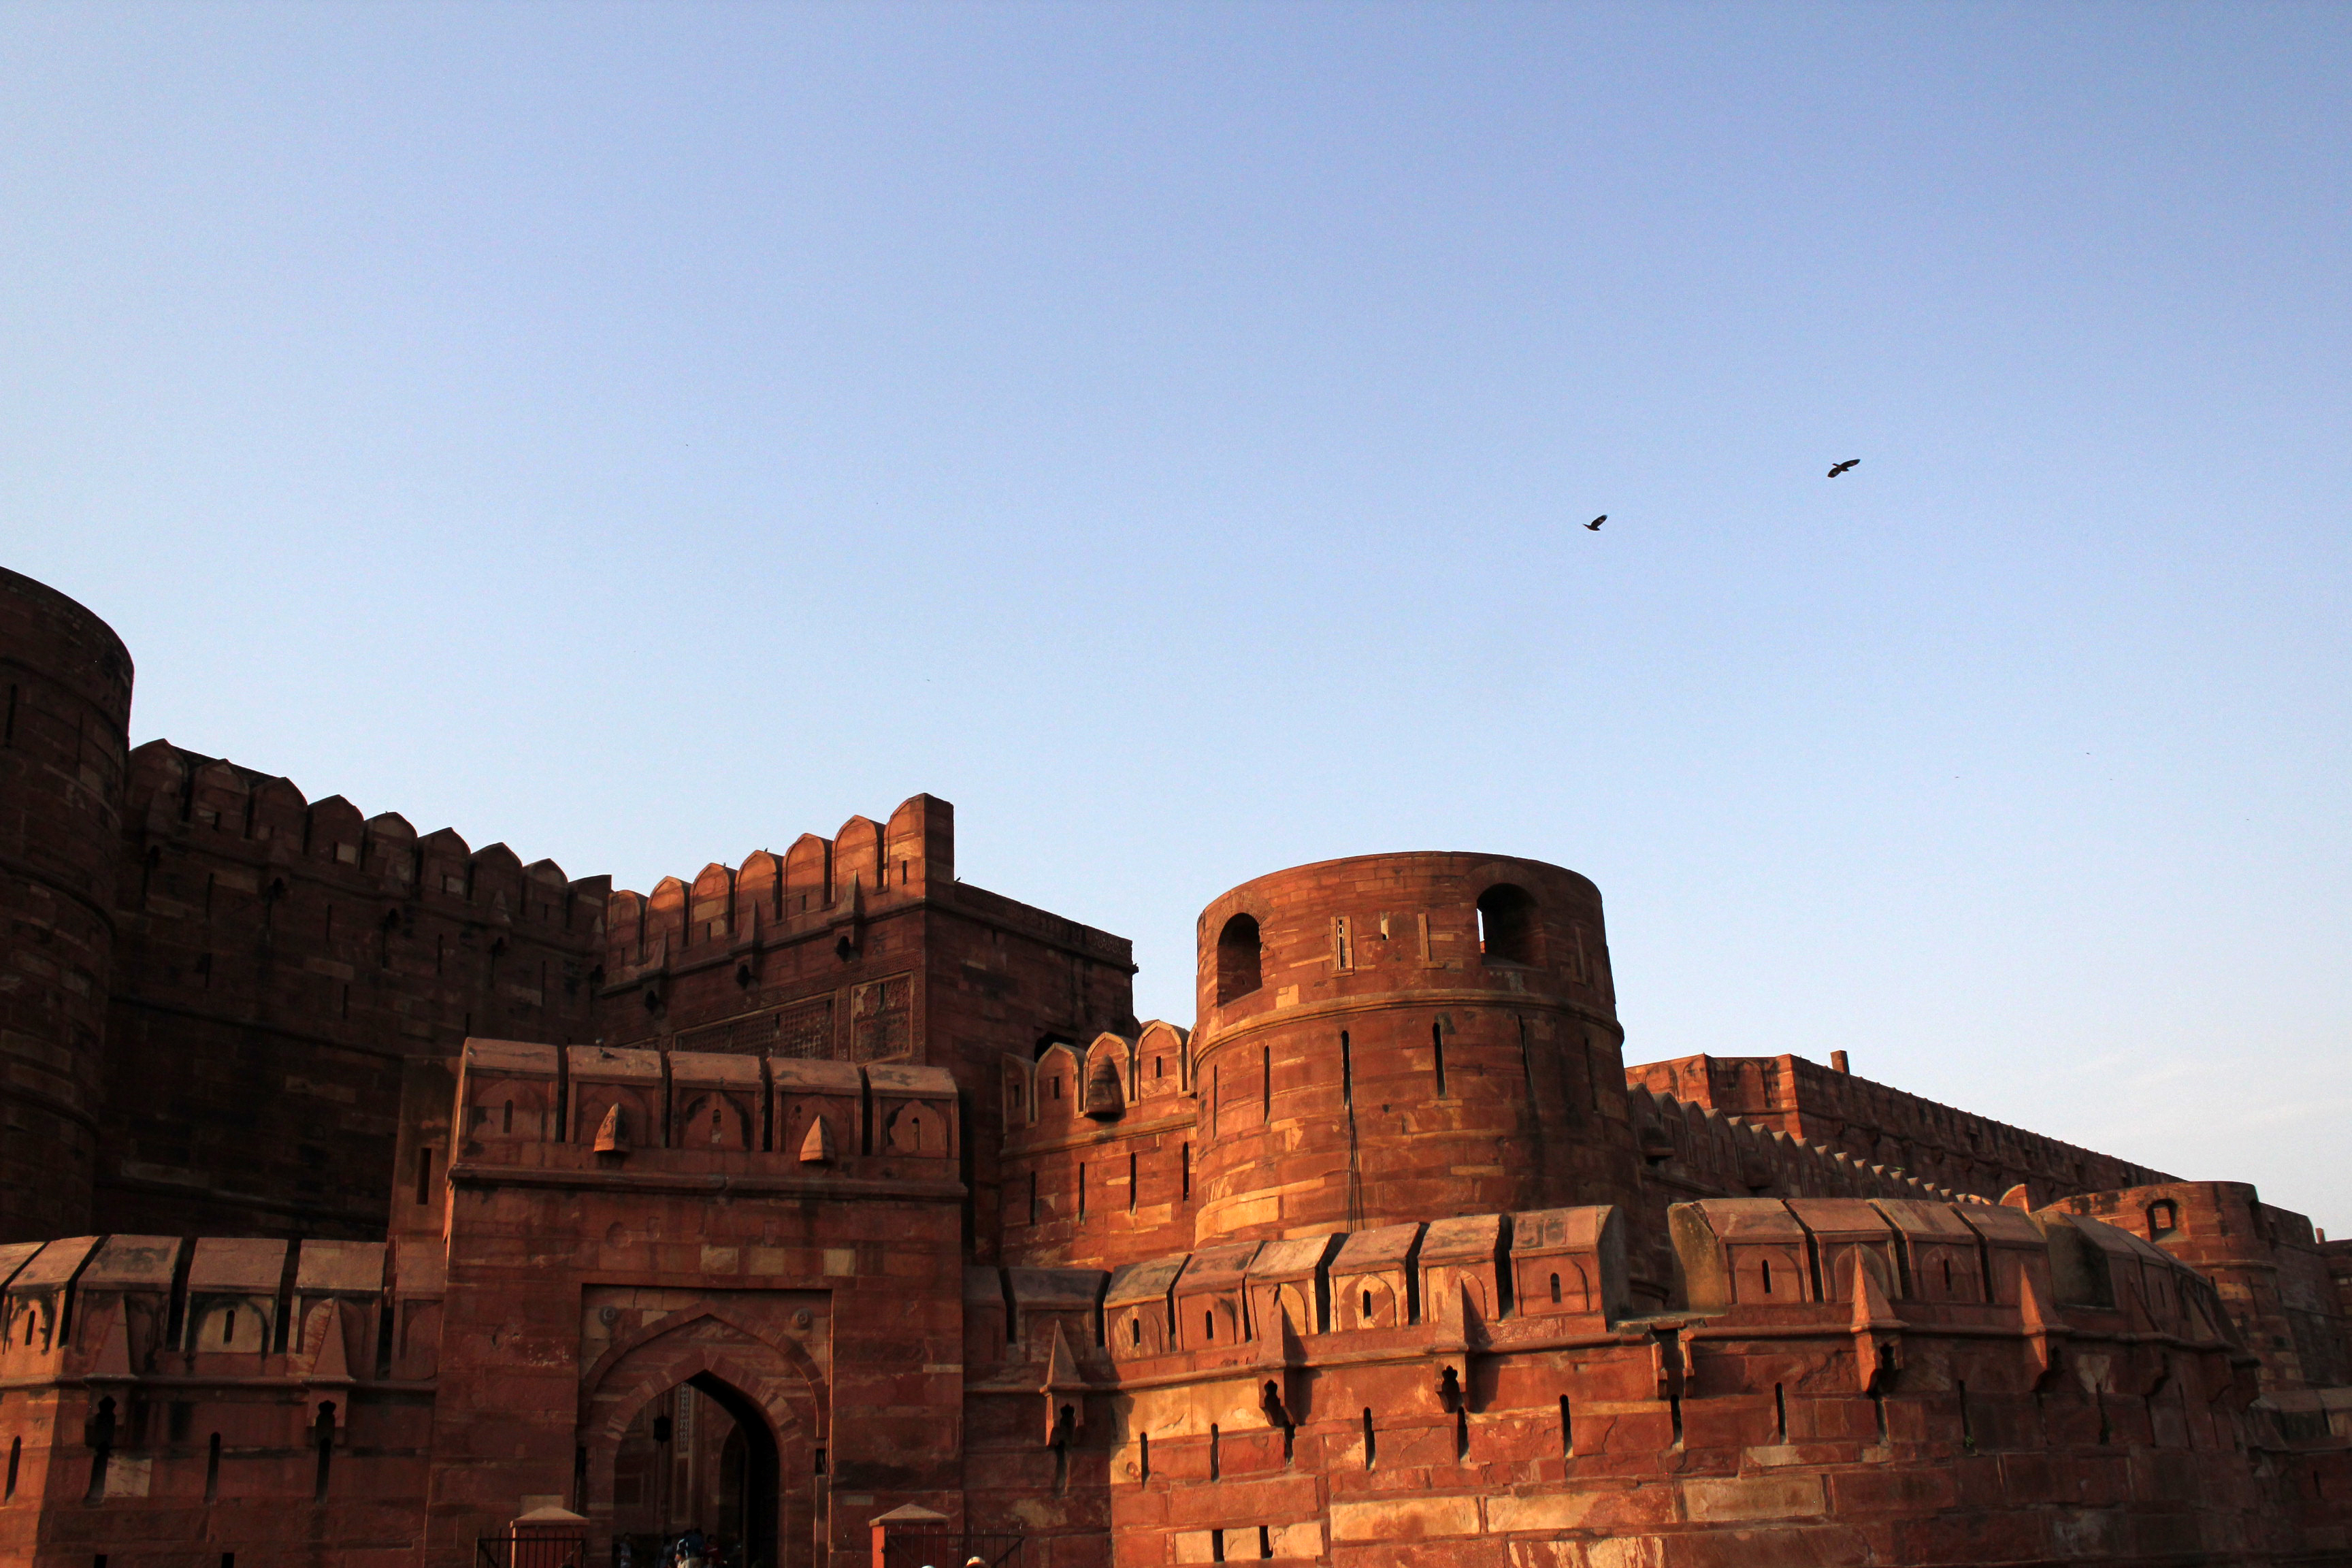 The Fort at Agra - Photo Essay by Amit Khanna (1).jpg